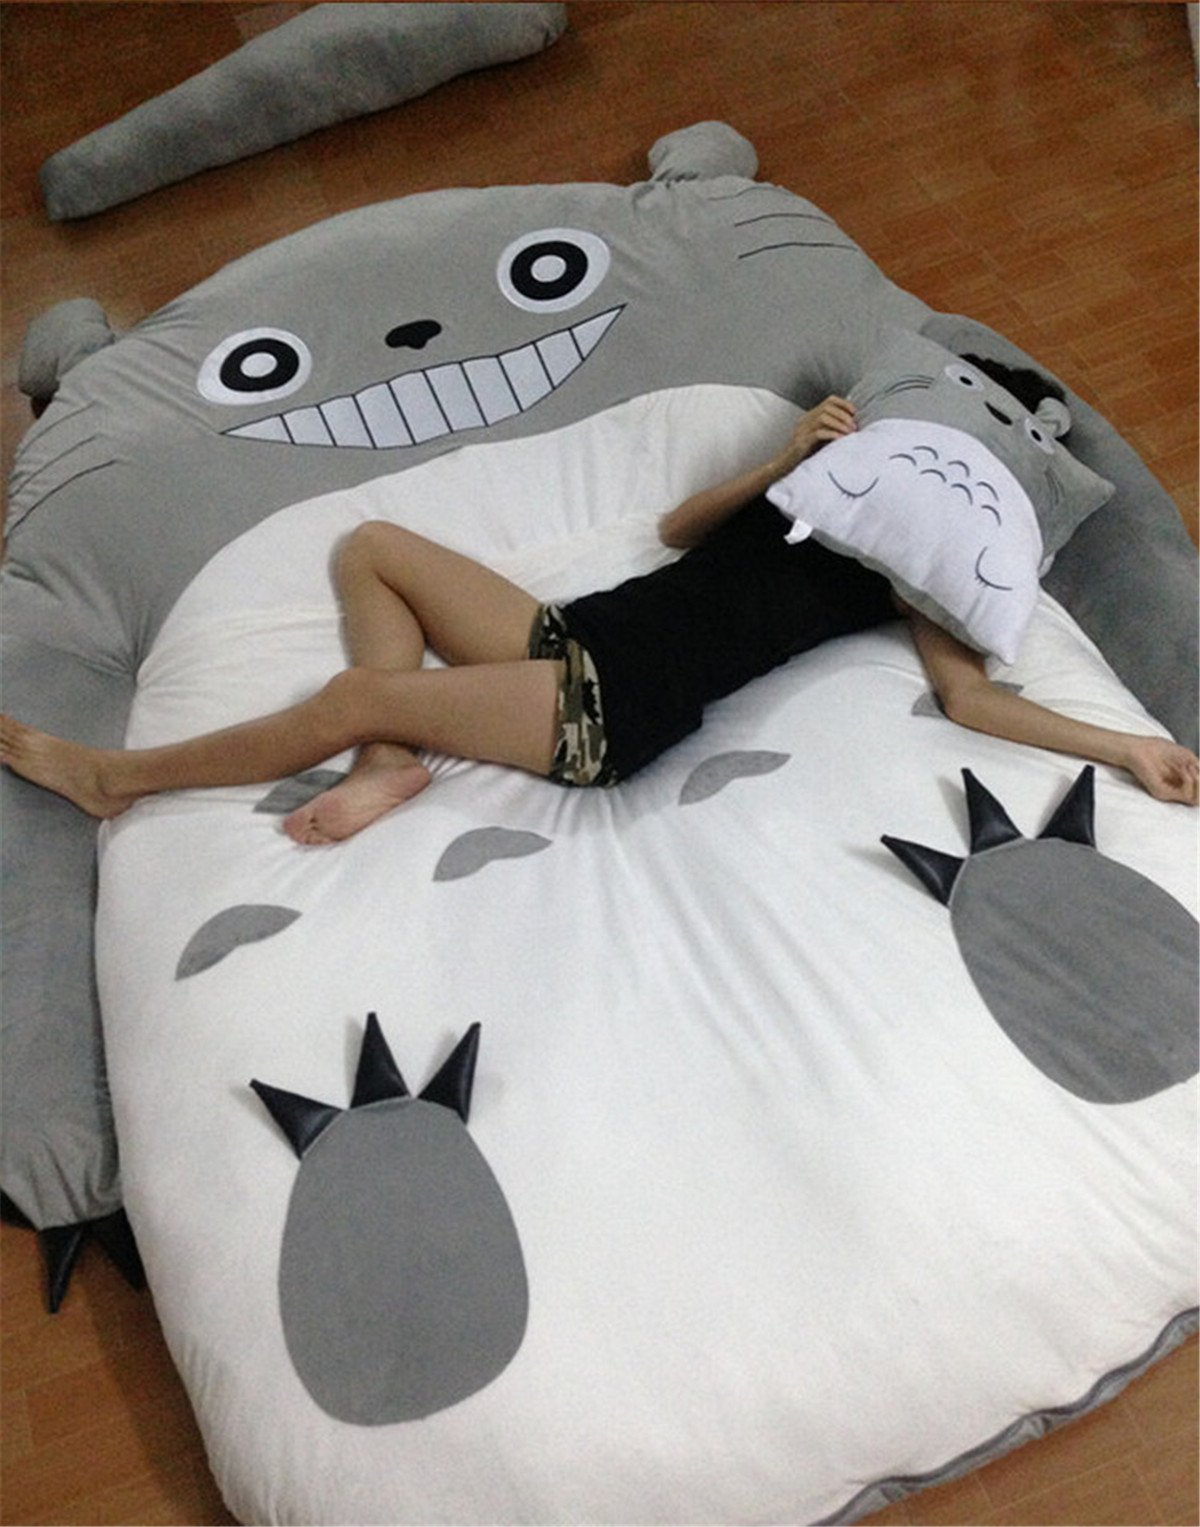 HOT SALE Children's and Adult Totoro Design Big Sofa Totoro Bed Mattress Sleeping Bag Mattress by VU ROUL (Image #5)